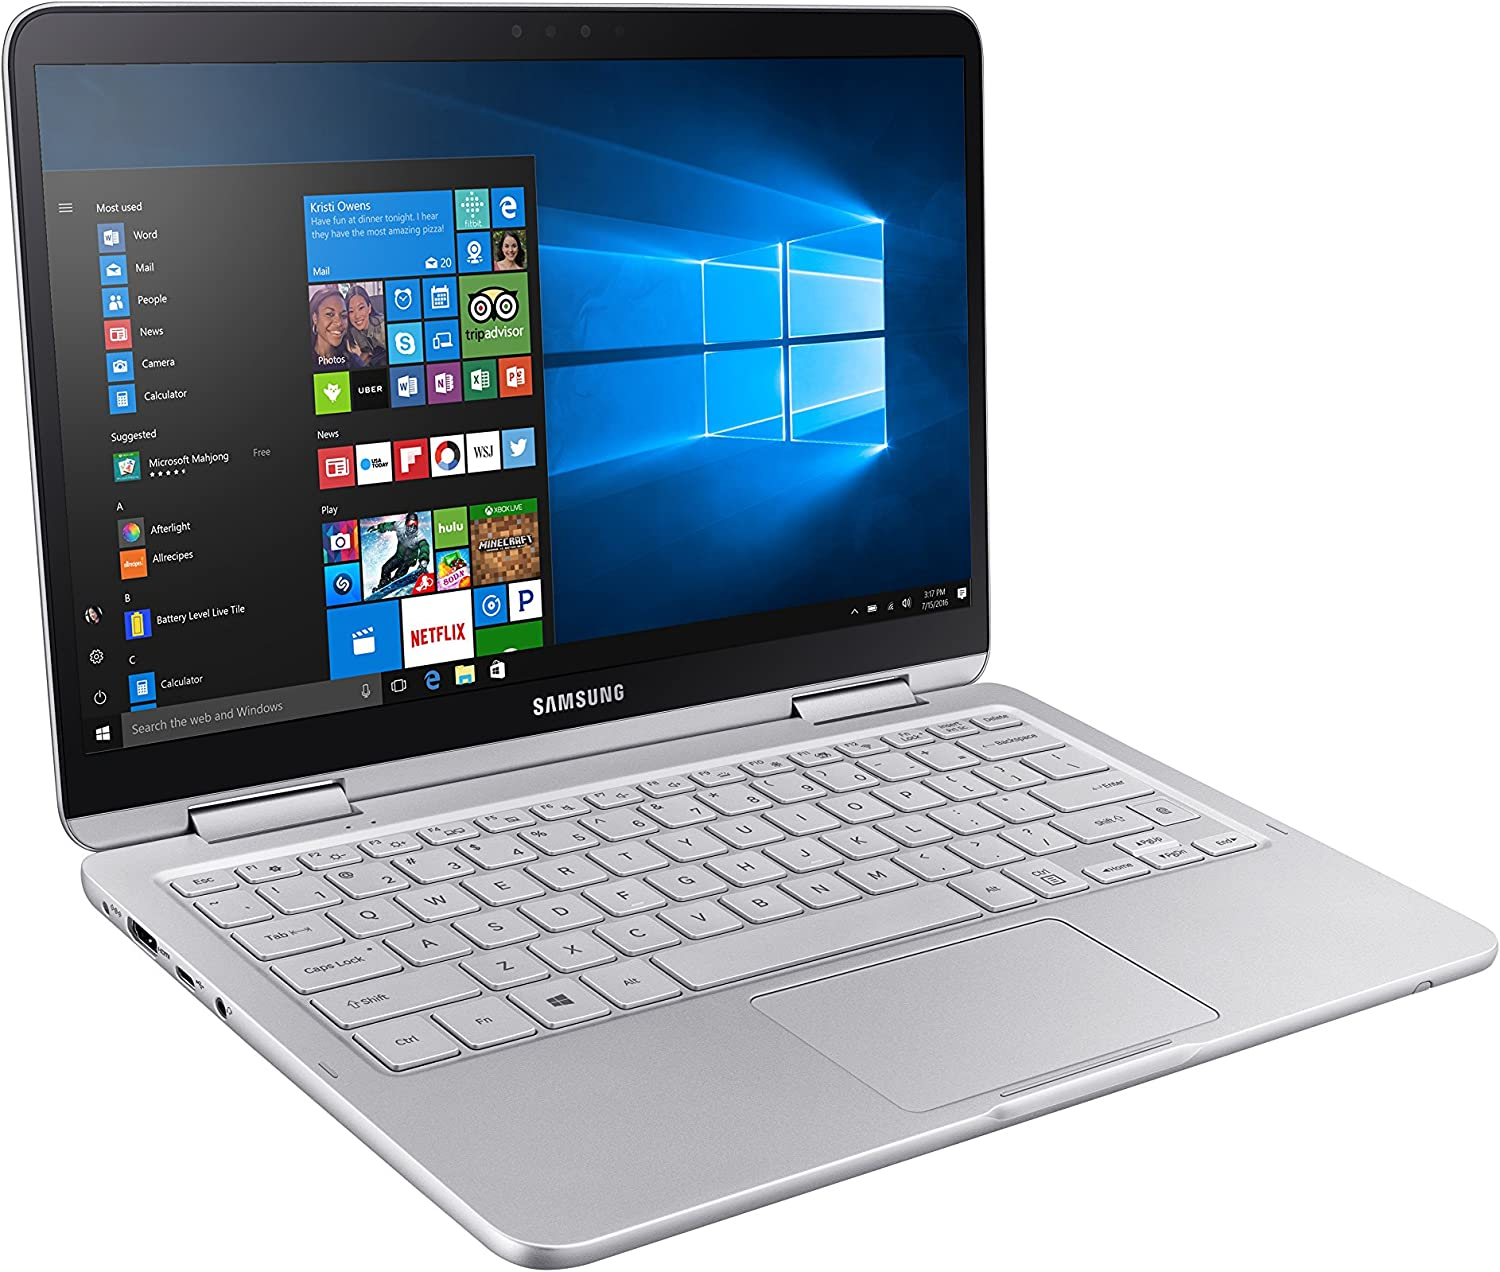 Samsung Notebook 9 Pen NP930QAA-K01US 2-in-1 Laptop (Windows 10 Home, Intel Core i7, 13.3